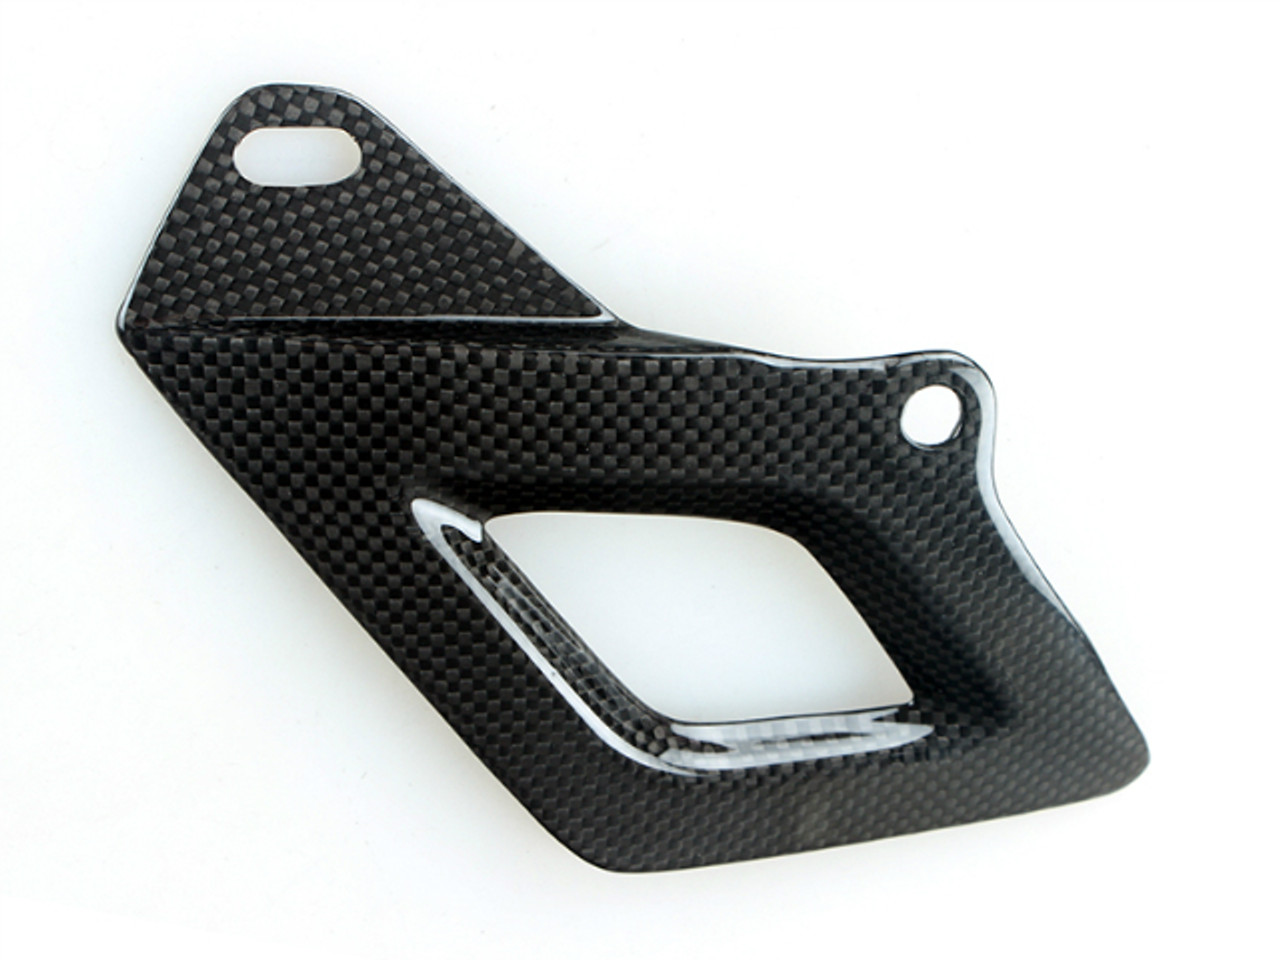 Glossy Plain Weave Carbon Fiber Lower Chain Guard for Aprilia RSV4 2009+ and Tuono V4 2011+